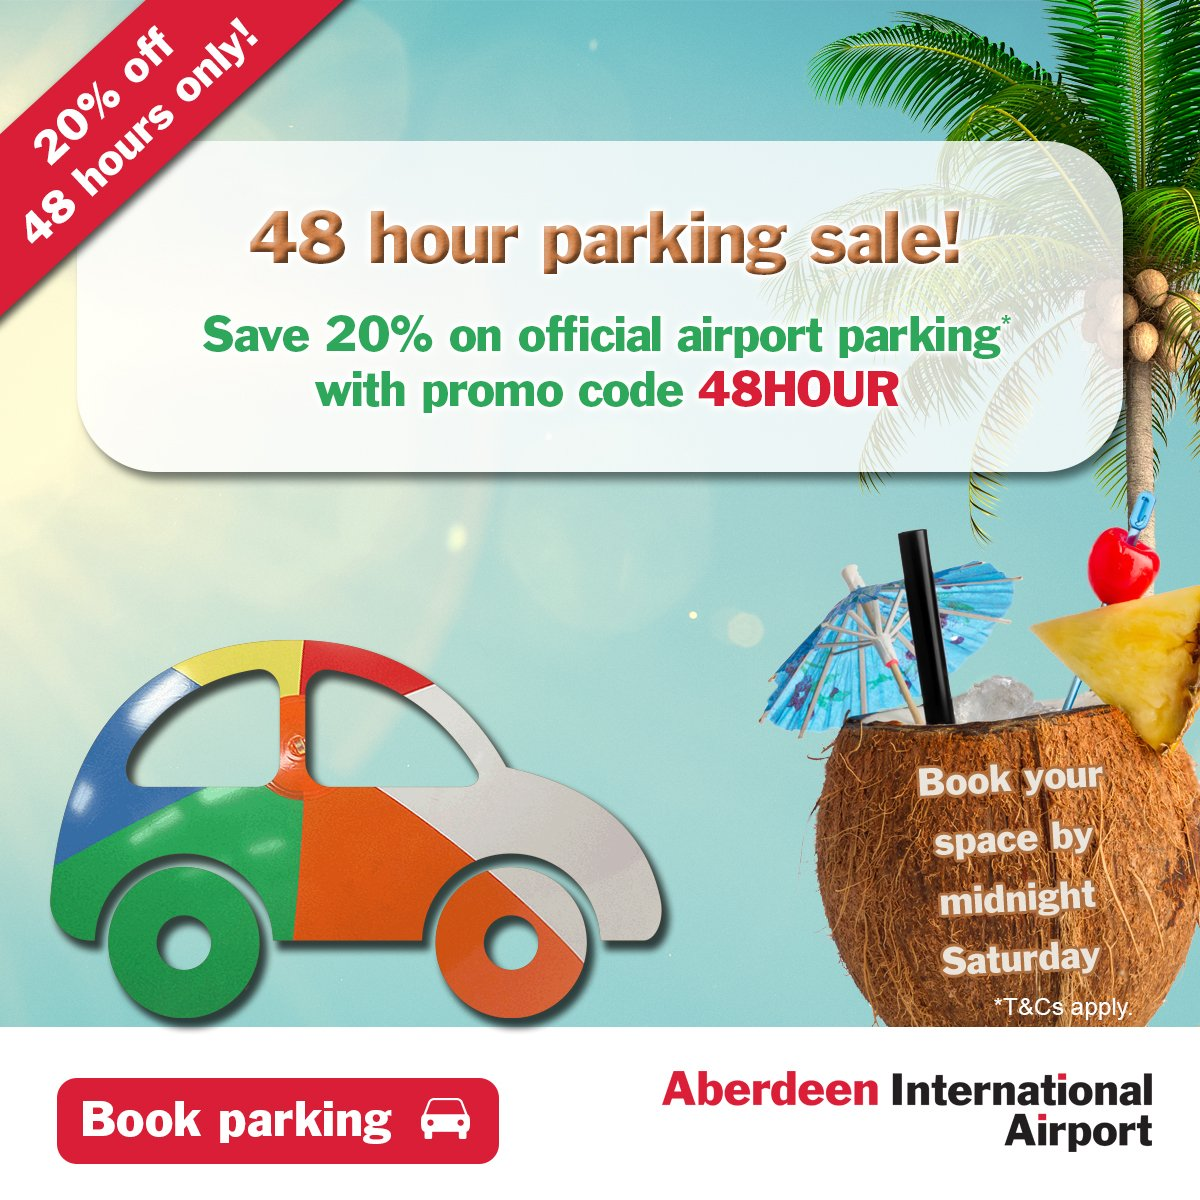 48 hour parking sale! Get 20% off with promo code 48HOUR when you book by midnight Saturday!